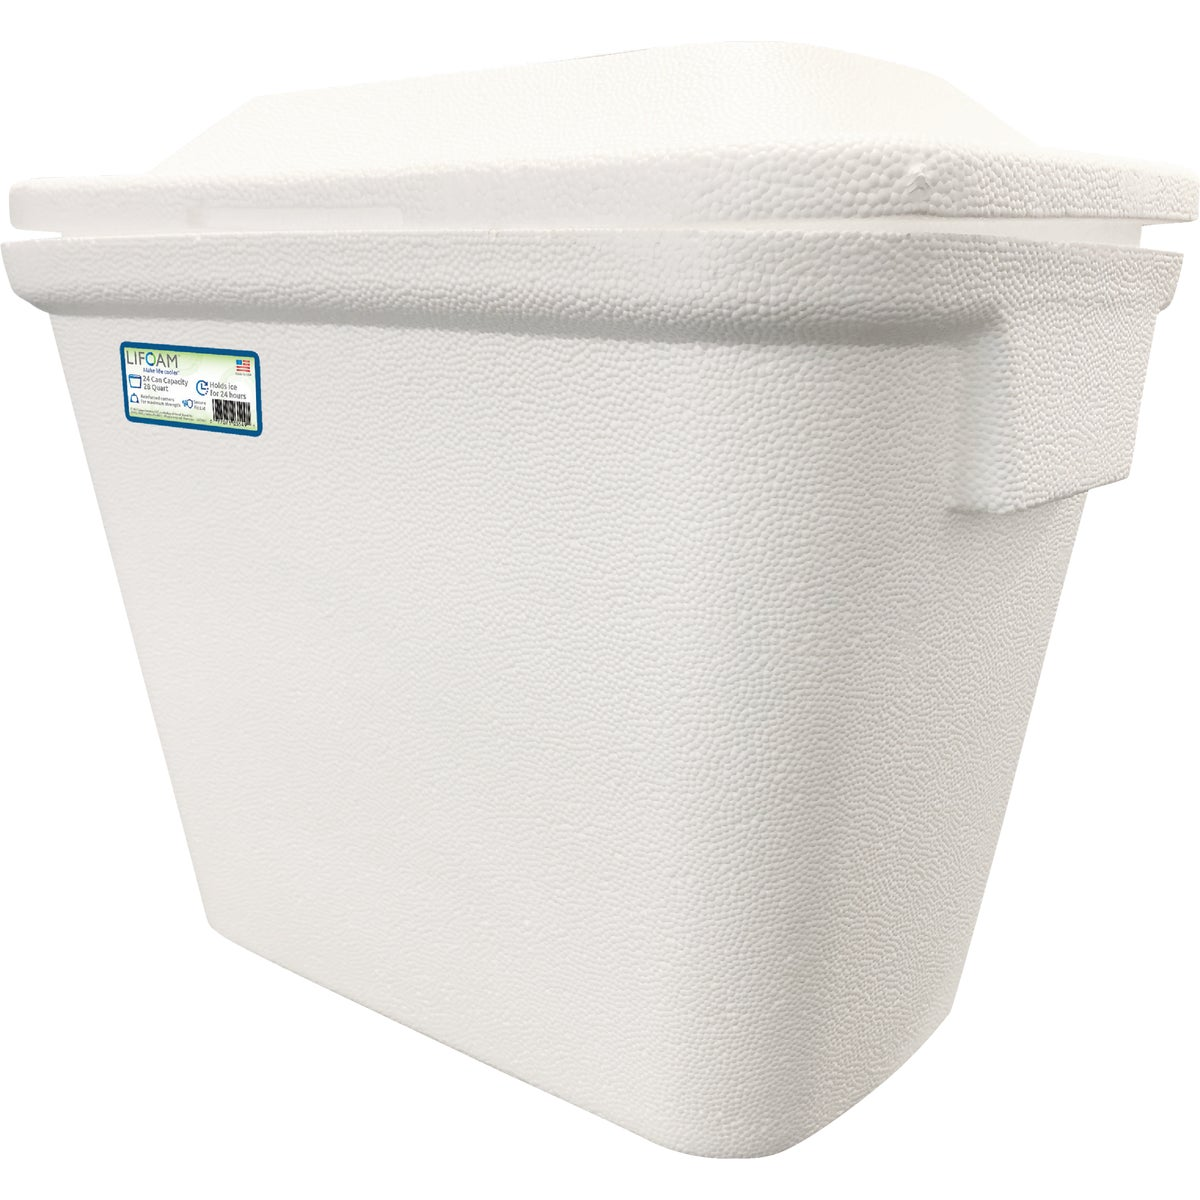 Lifoam Div. Life Like 30QT FOAM COOLER 3542